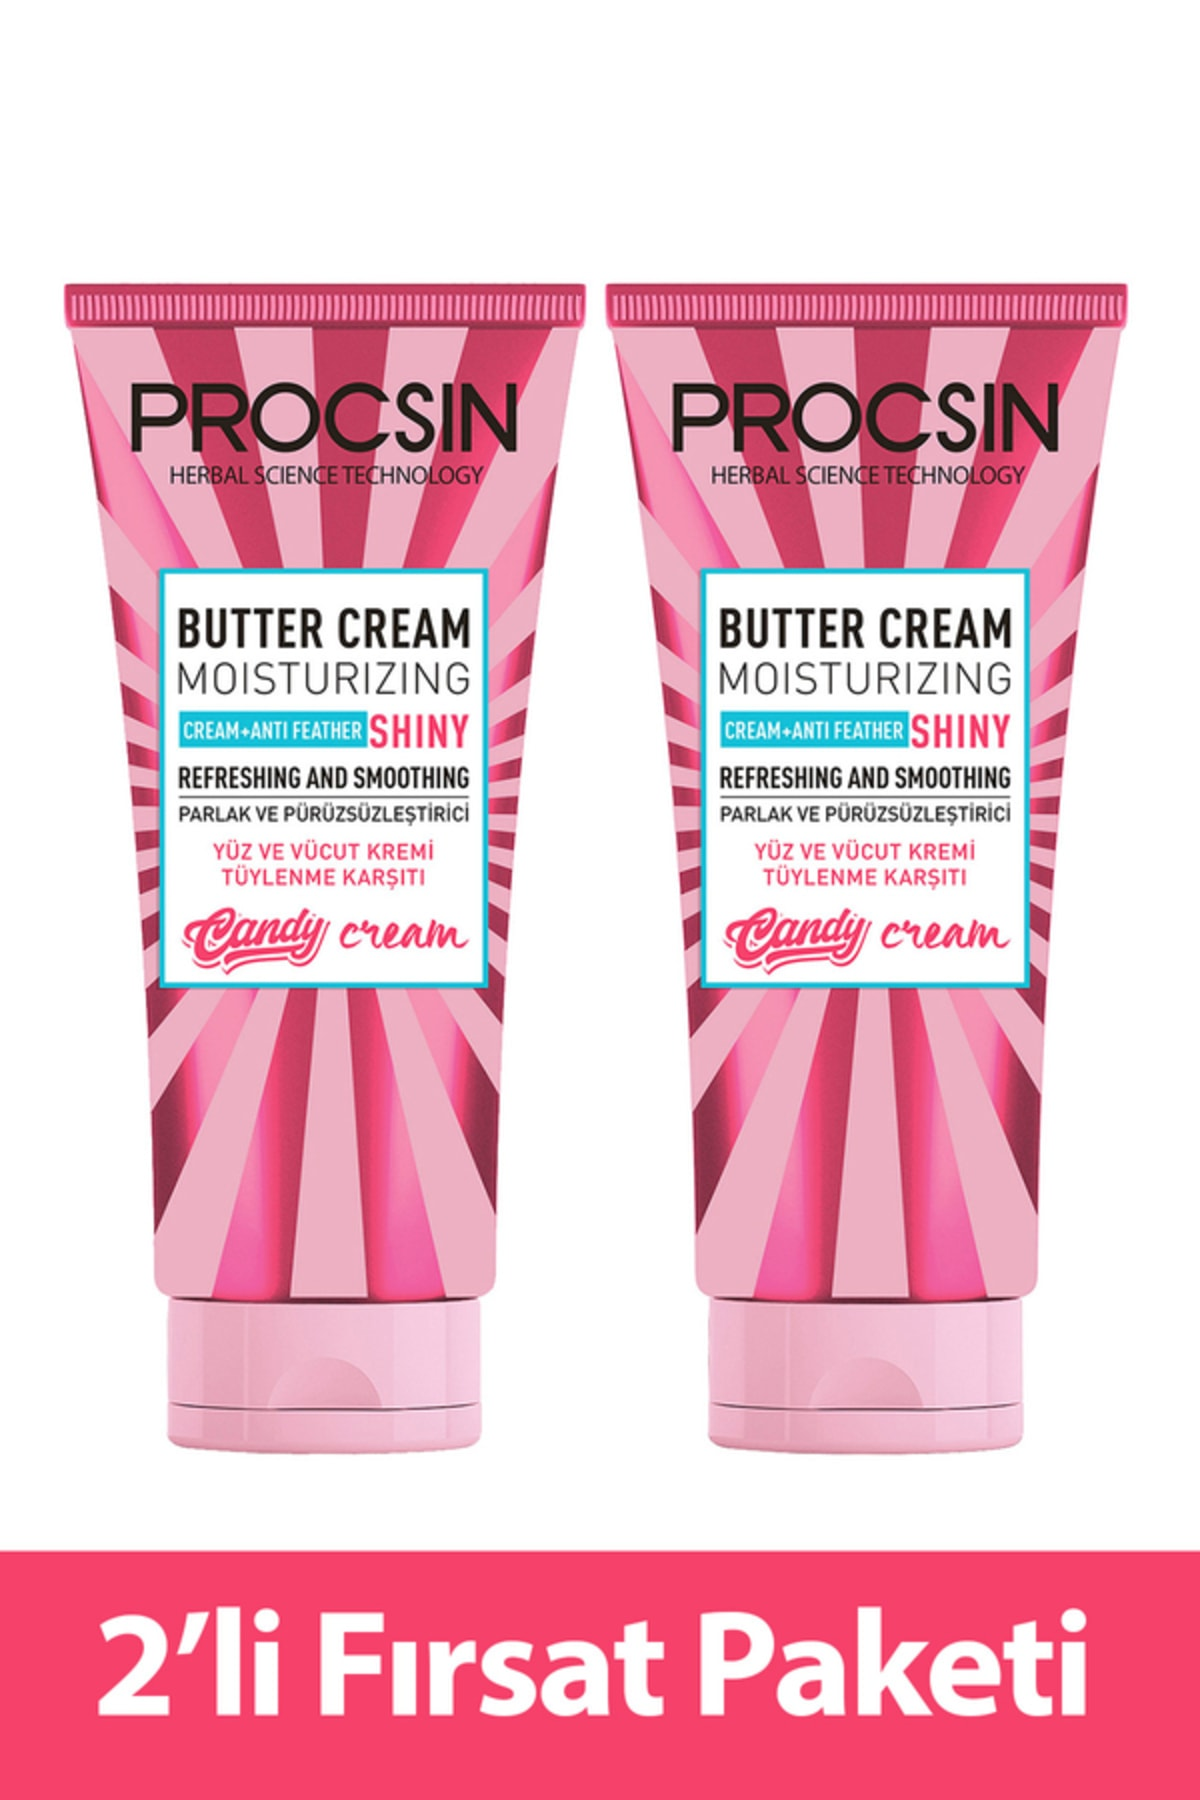 Фото - Procsin 2 pcs 175ml Butter Cream Moisturizing Anti Feather Shiny Fresh and Smoothing Effect Body Cream too faced butter cream